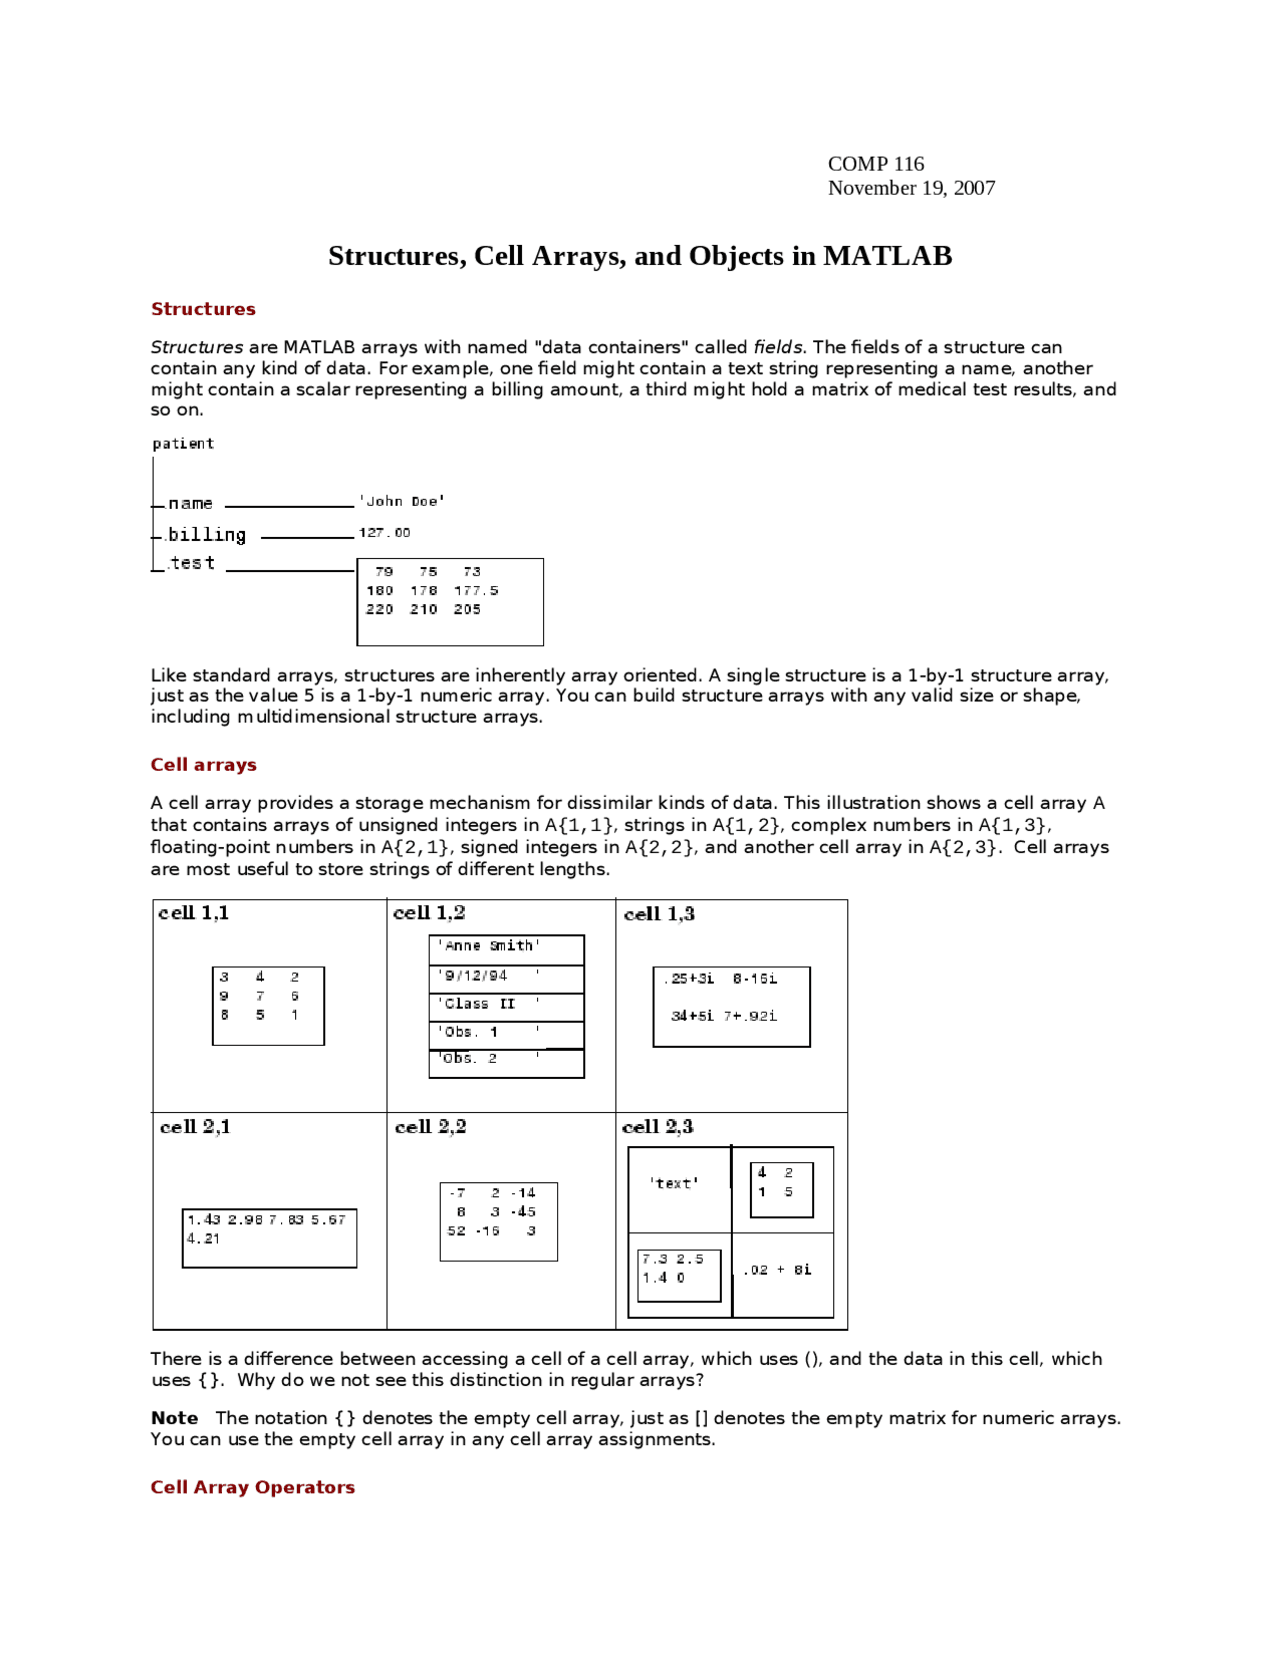 Structure, Cell Arrays and Objects in MATLAB   Study Guide   COMP ...